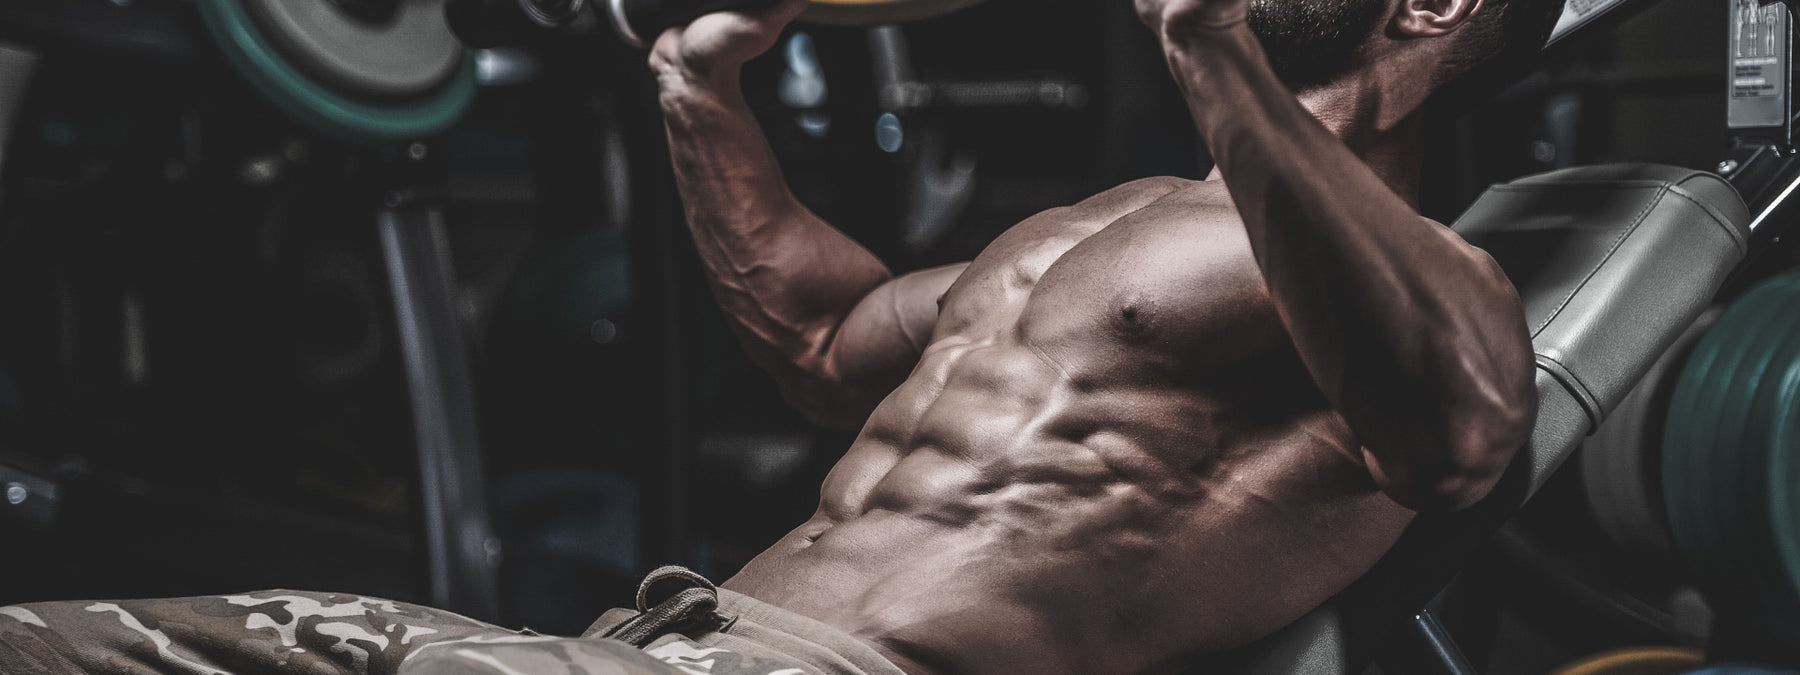 Ectomorph male diet for sexual health